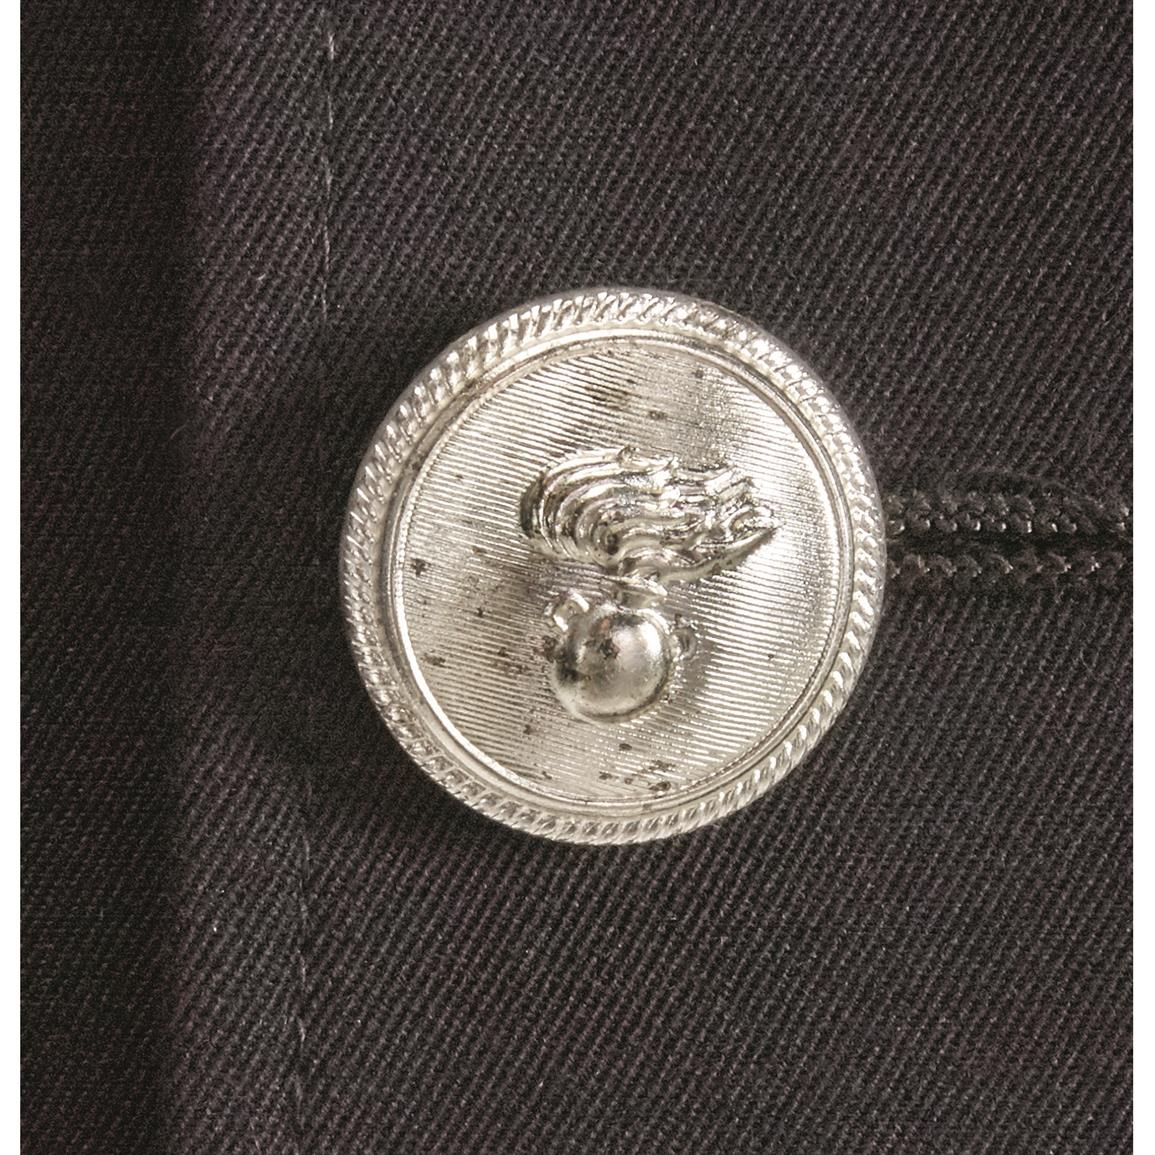 Double breasted with insignia buttons